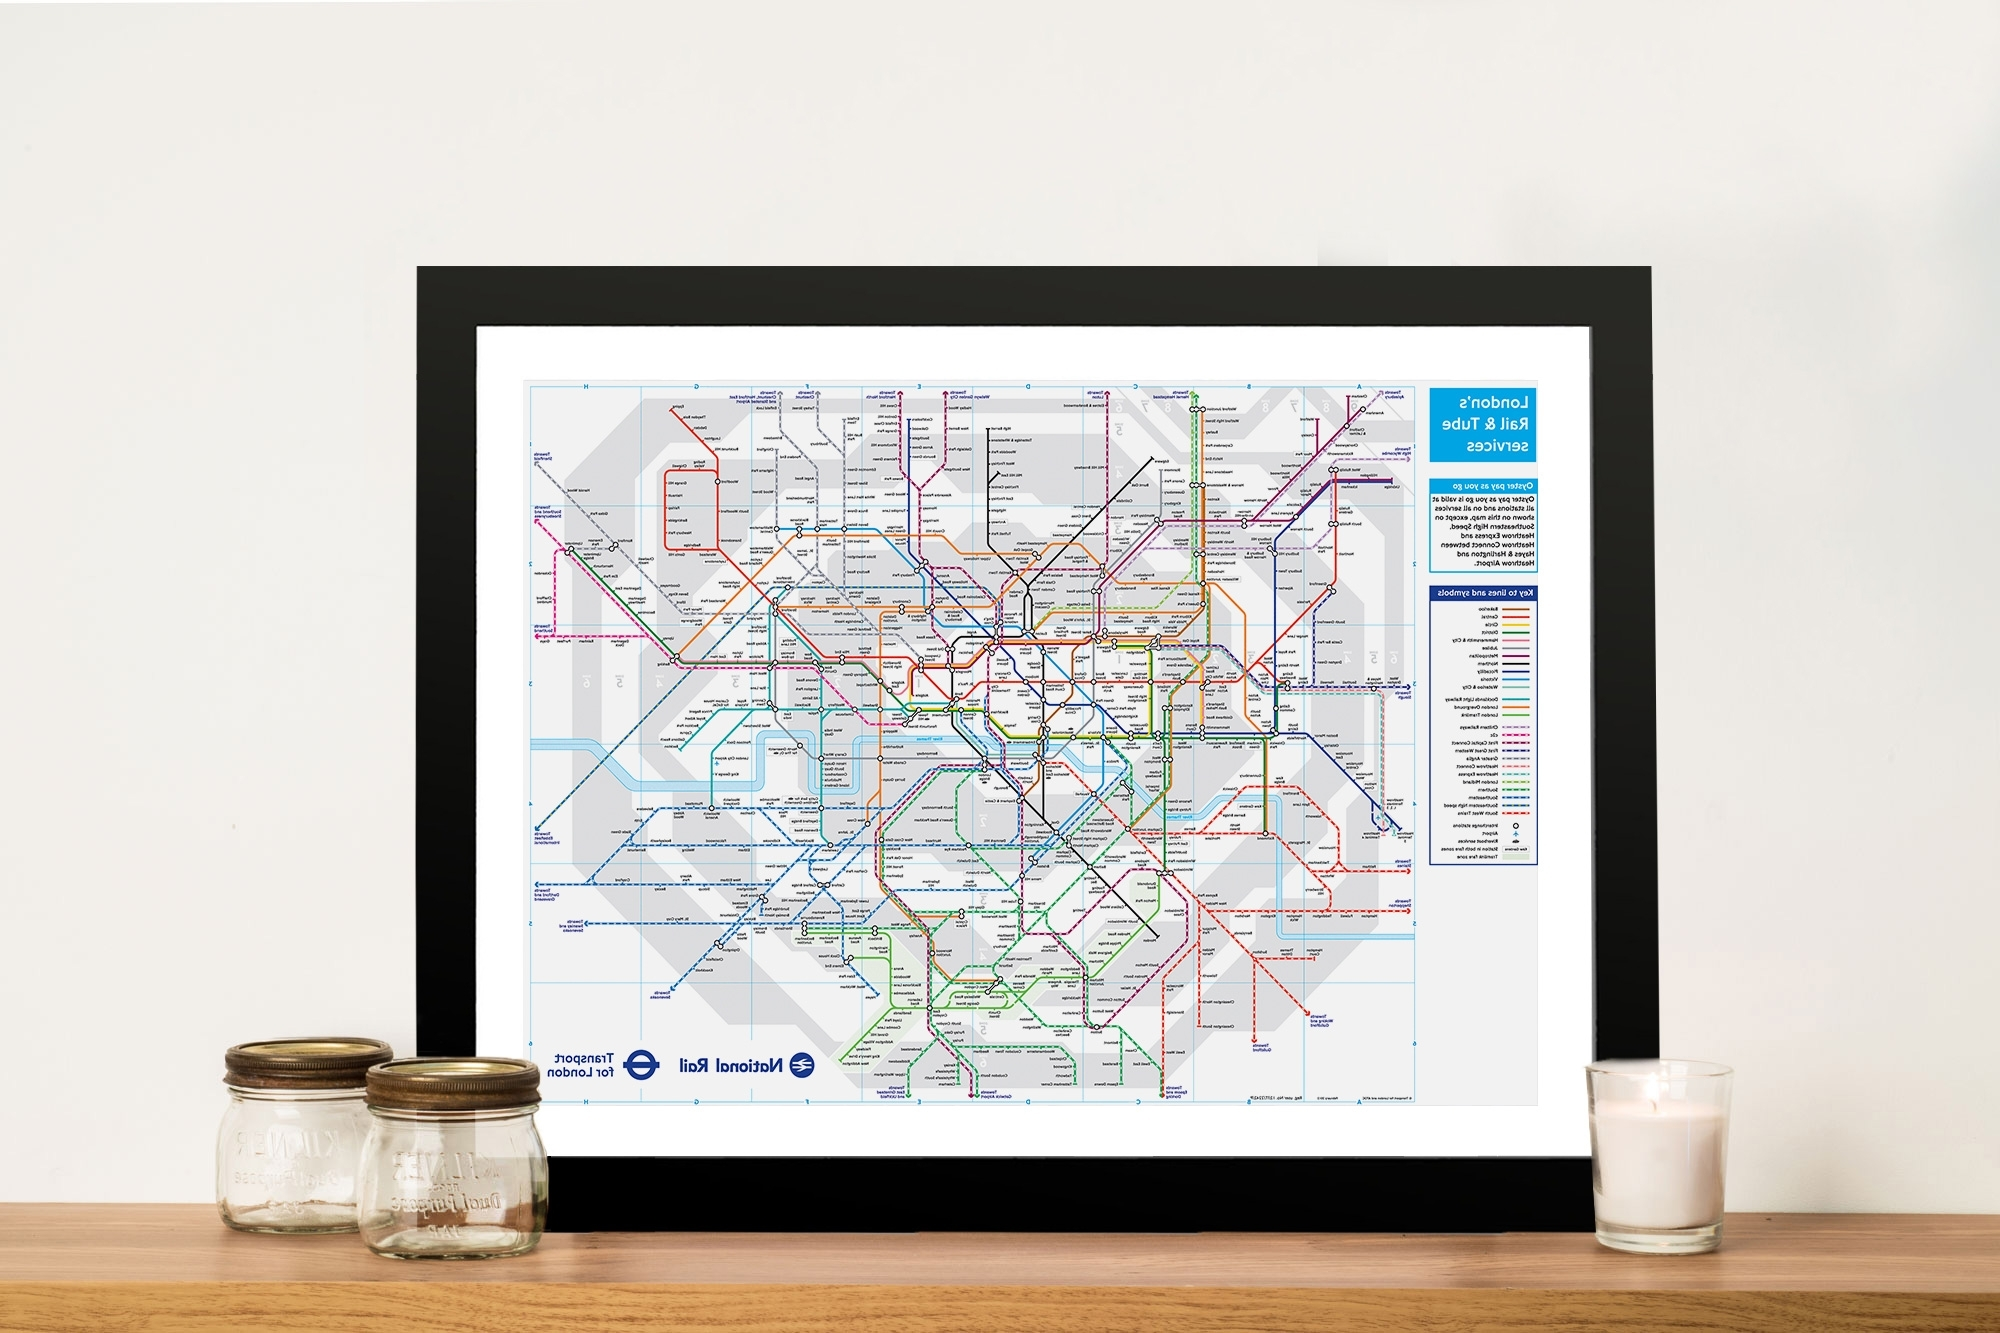 London Underground Tube Map Canvas Wall Art Pictures Australia With Most Recent Tube Map Wall Art (View 8 of 15)